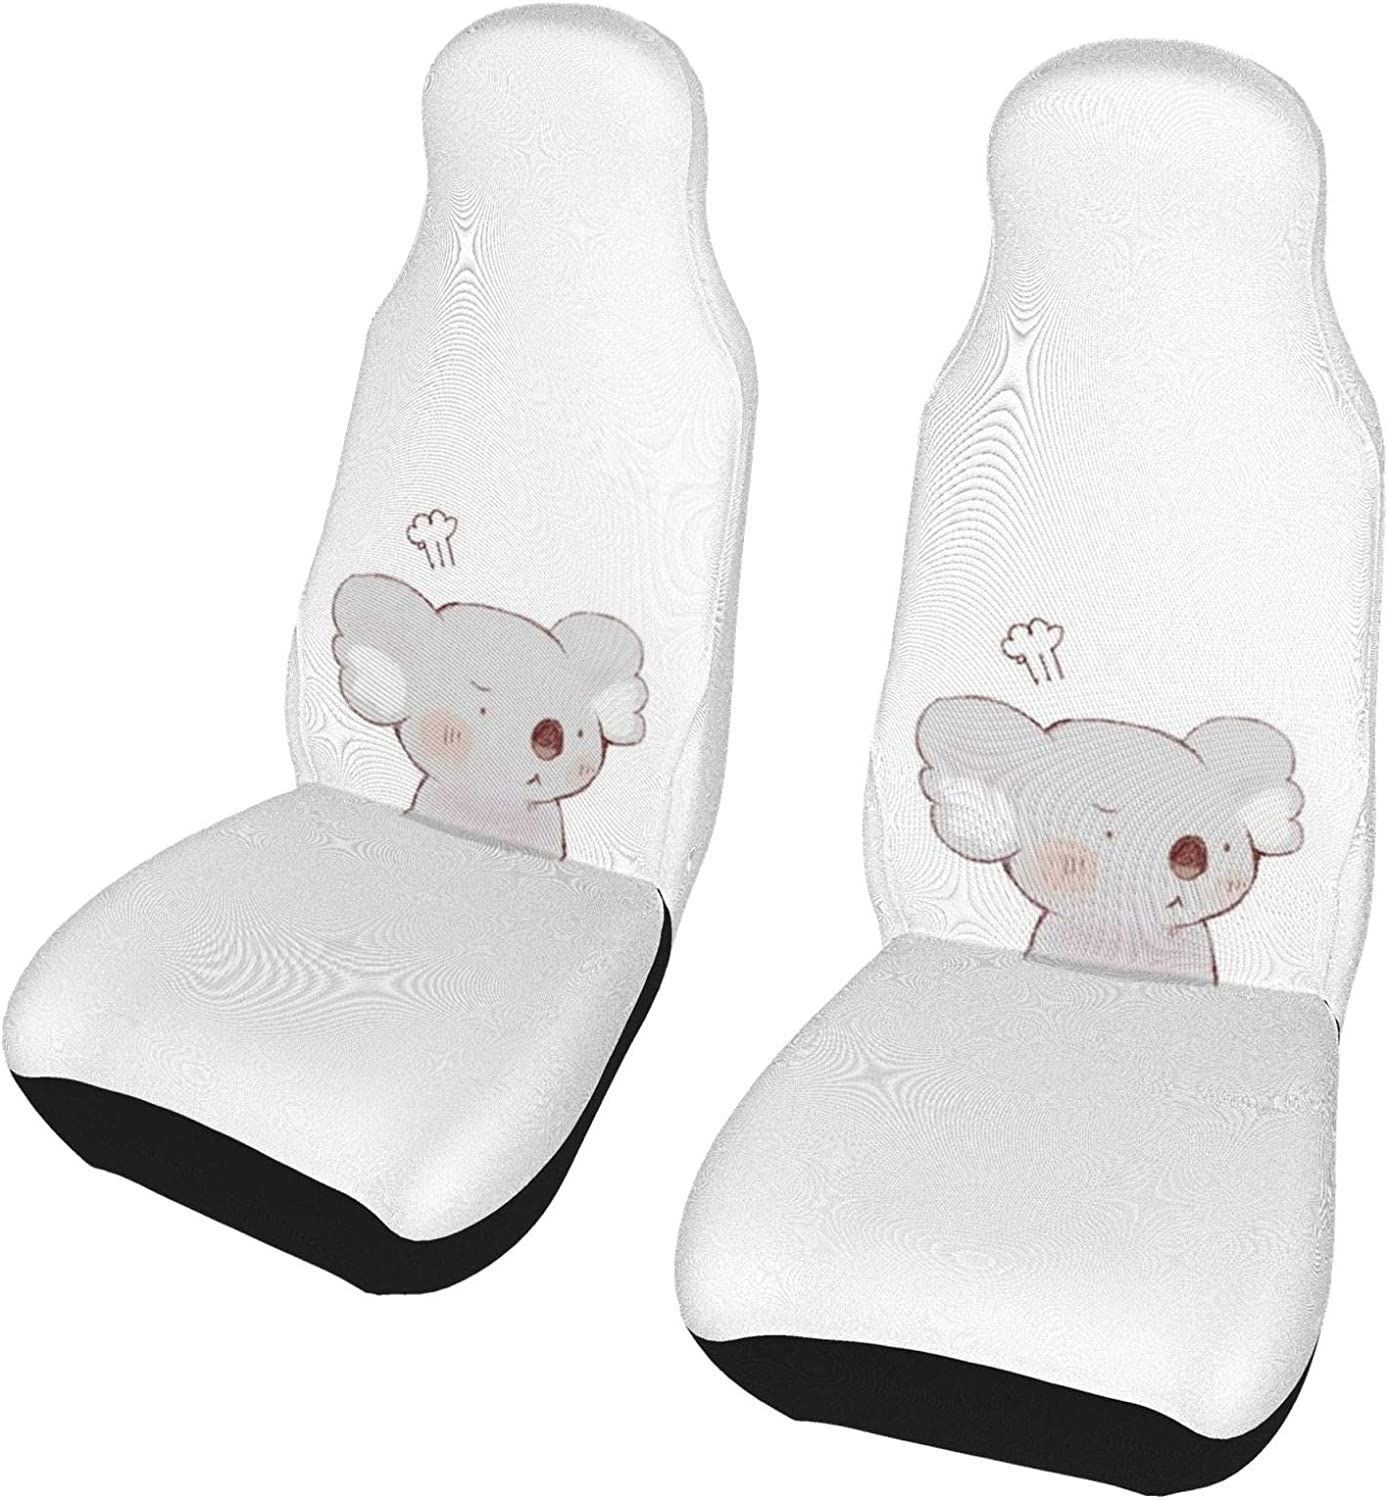 REDDATES Cute Max 57% OFF Little Mouse Car Cover Front Cheap bargain Protec Seat Seats